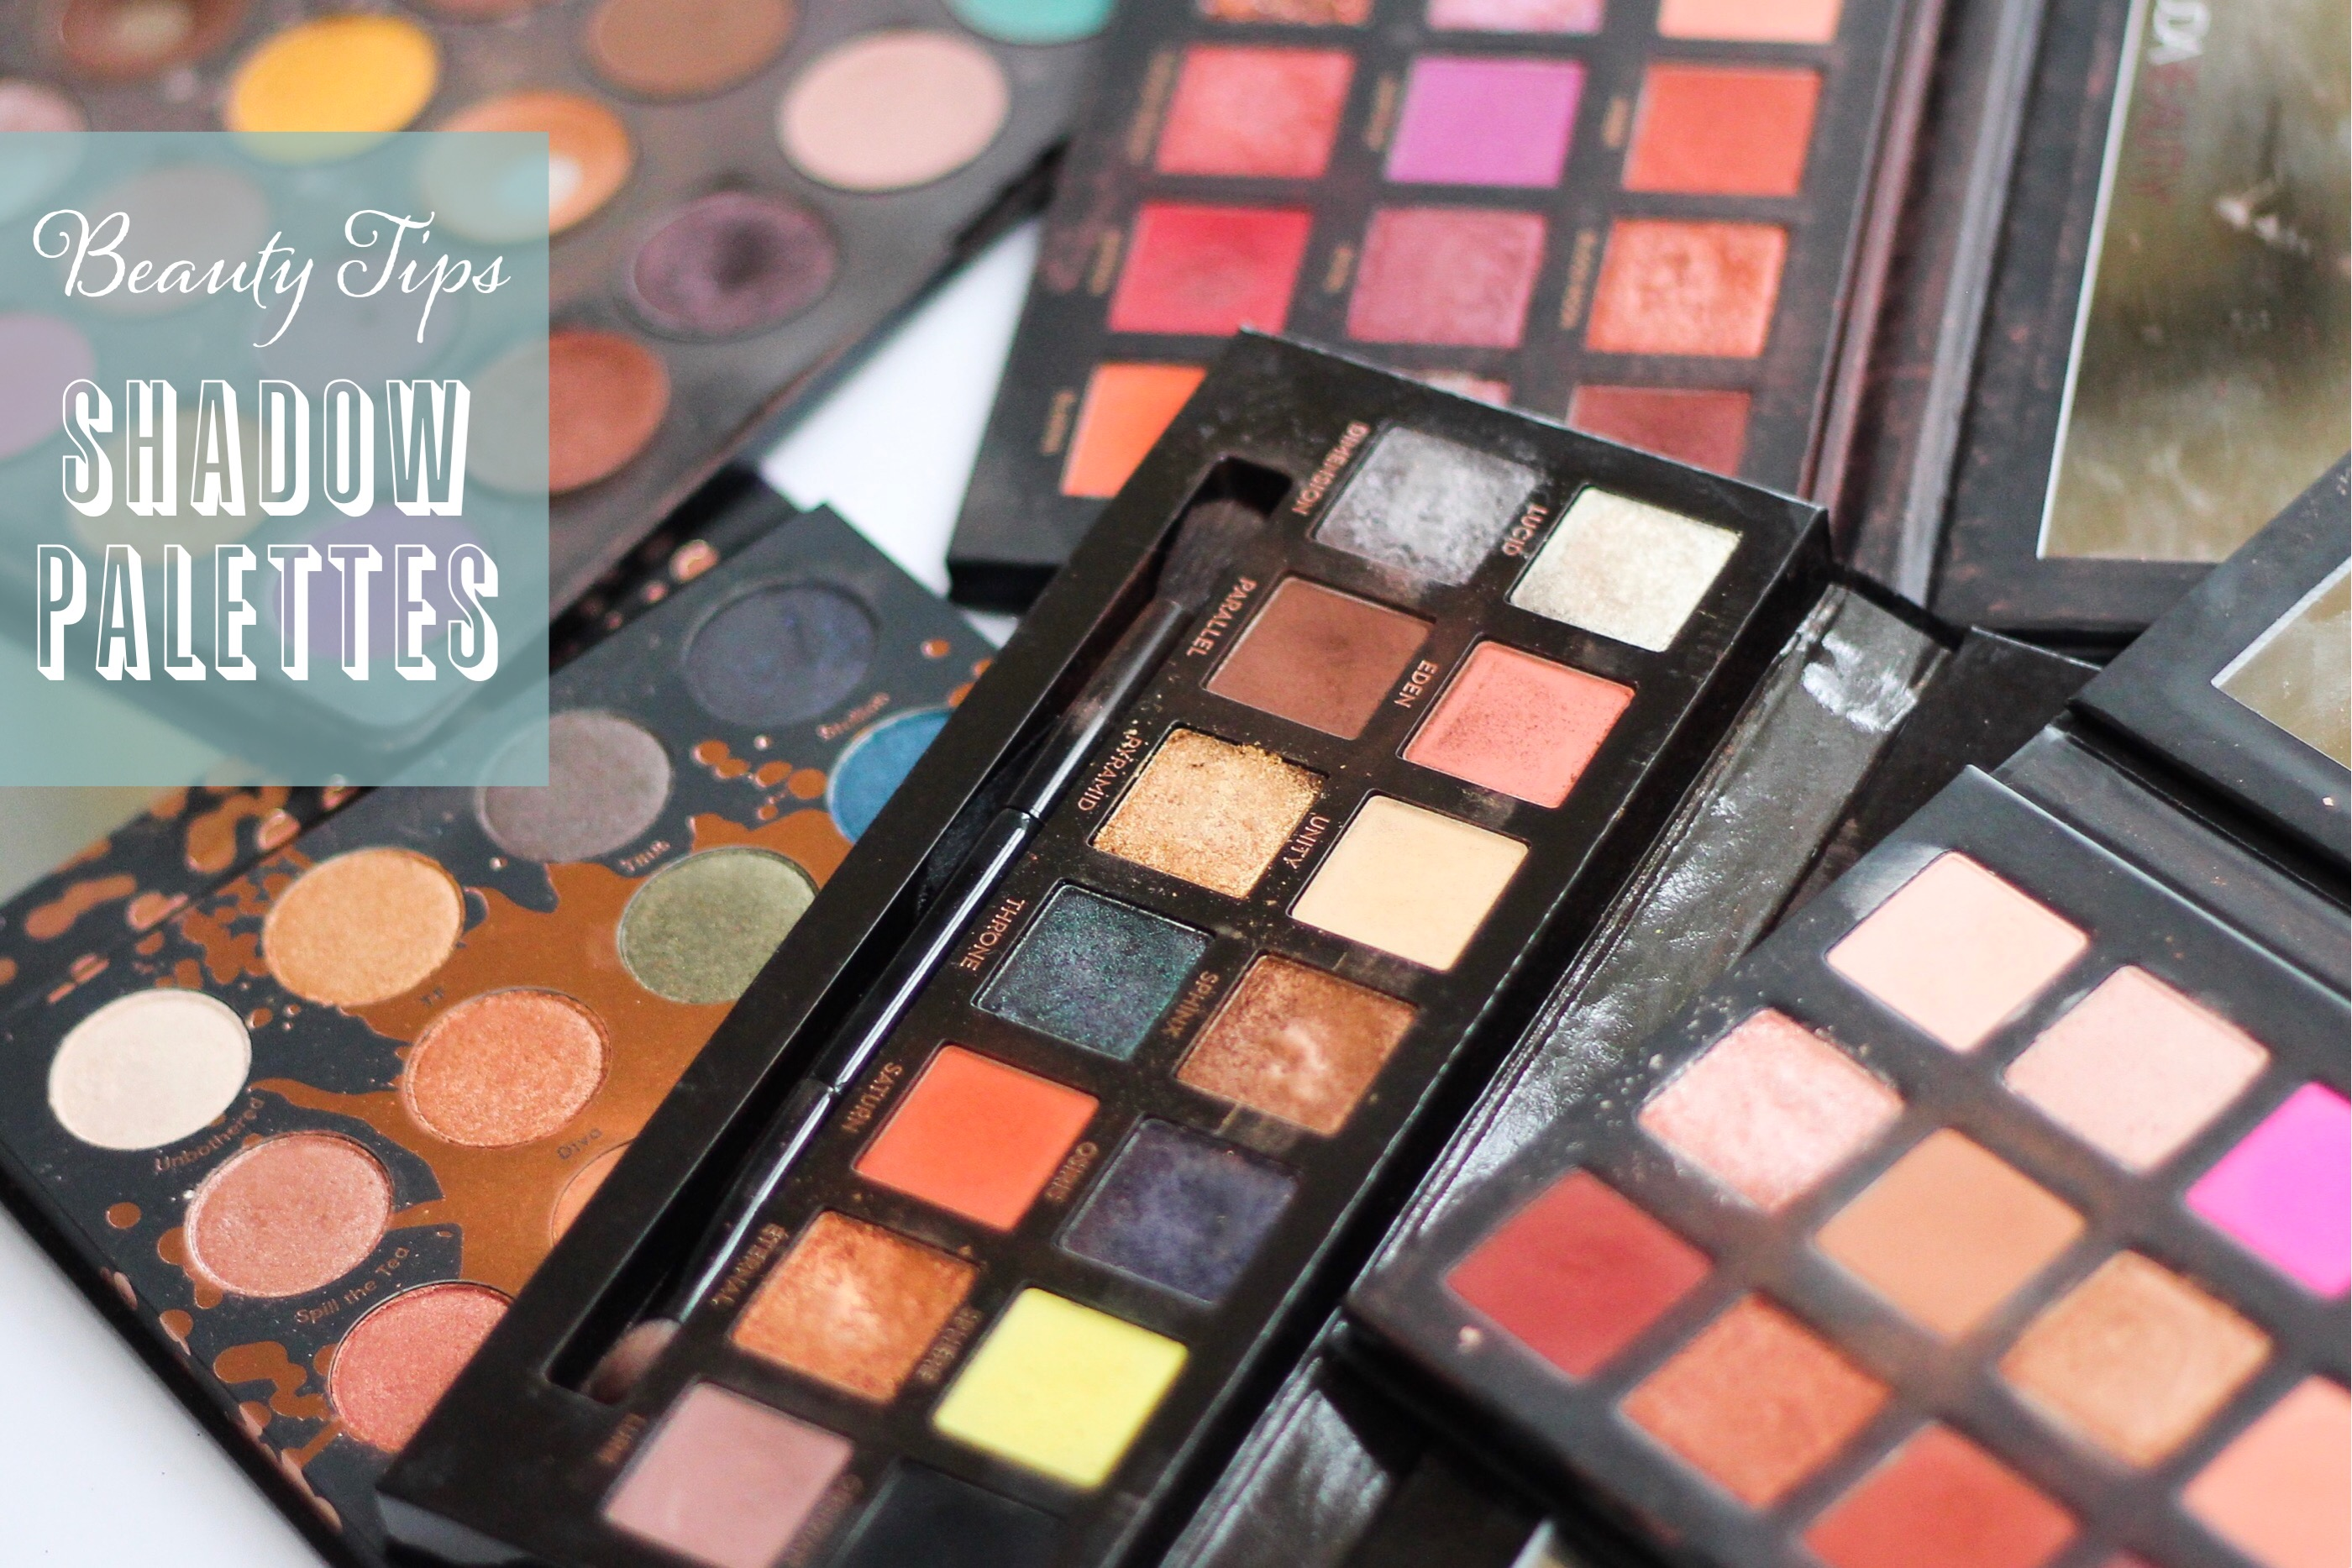 Anastasia Beverly Hills Prism Eyeshadow Palette, colourpop perception makeup Shayla, kylie cosmetics sipping pretty, huda beauty desert dusk, Sephora review, BeautyTips: How to choose a good eyeshadow palette, dark skin beauty plus blogger